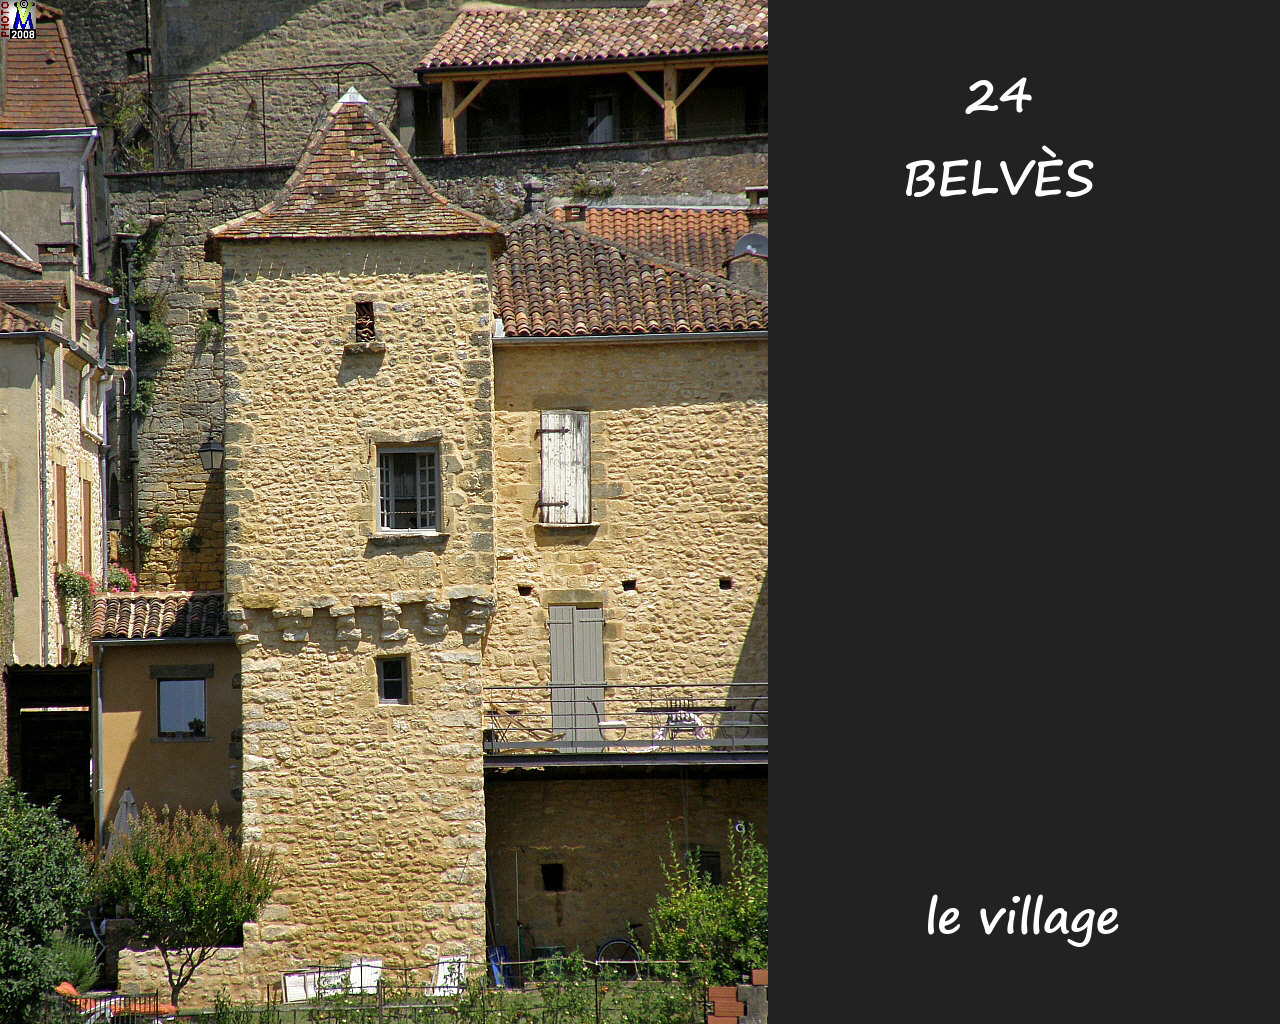 24BELVES_village_142.jpg